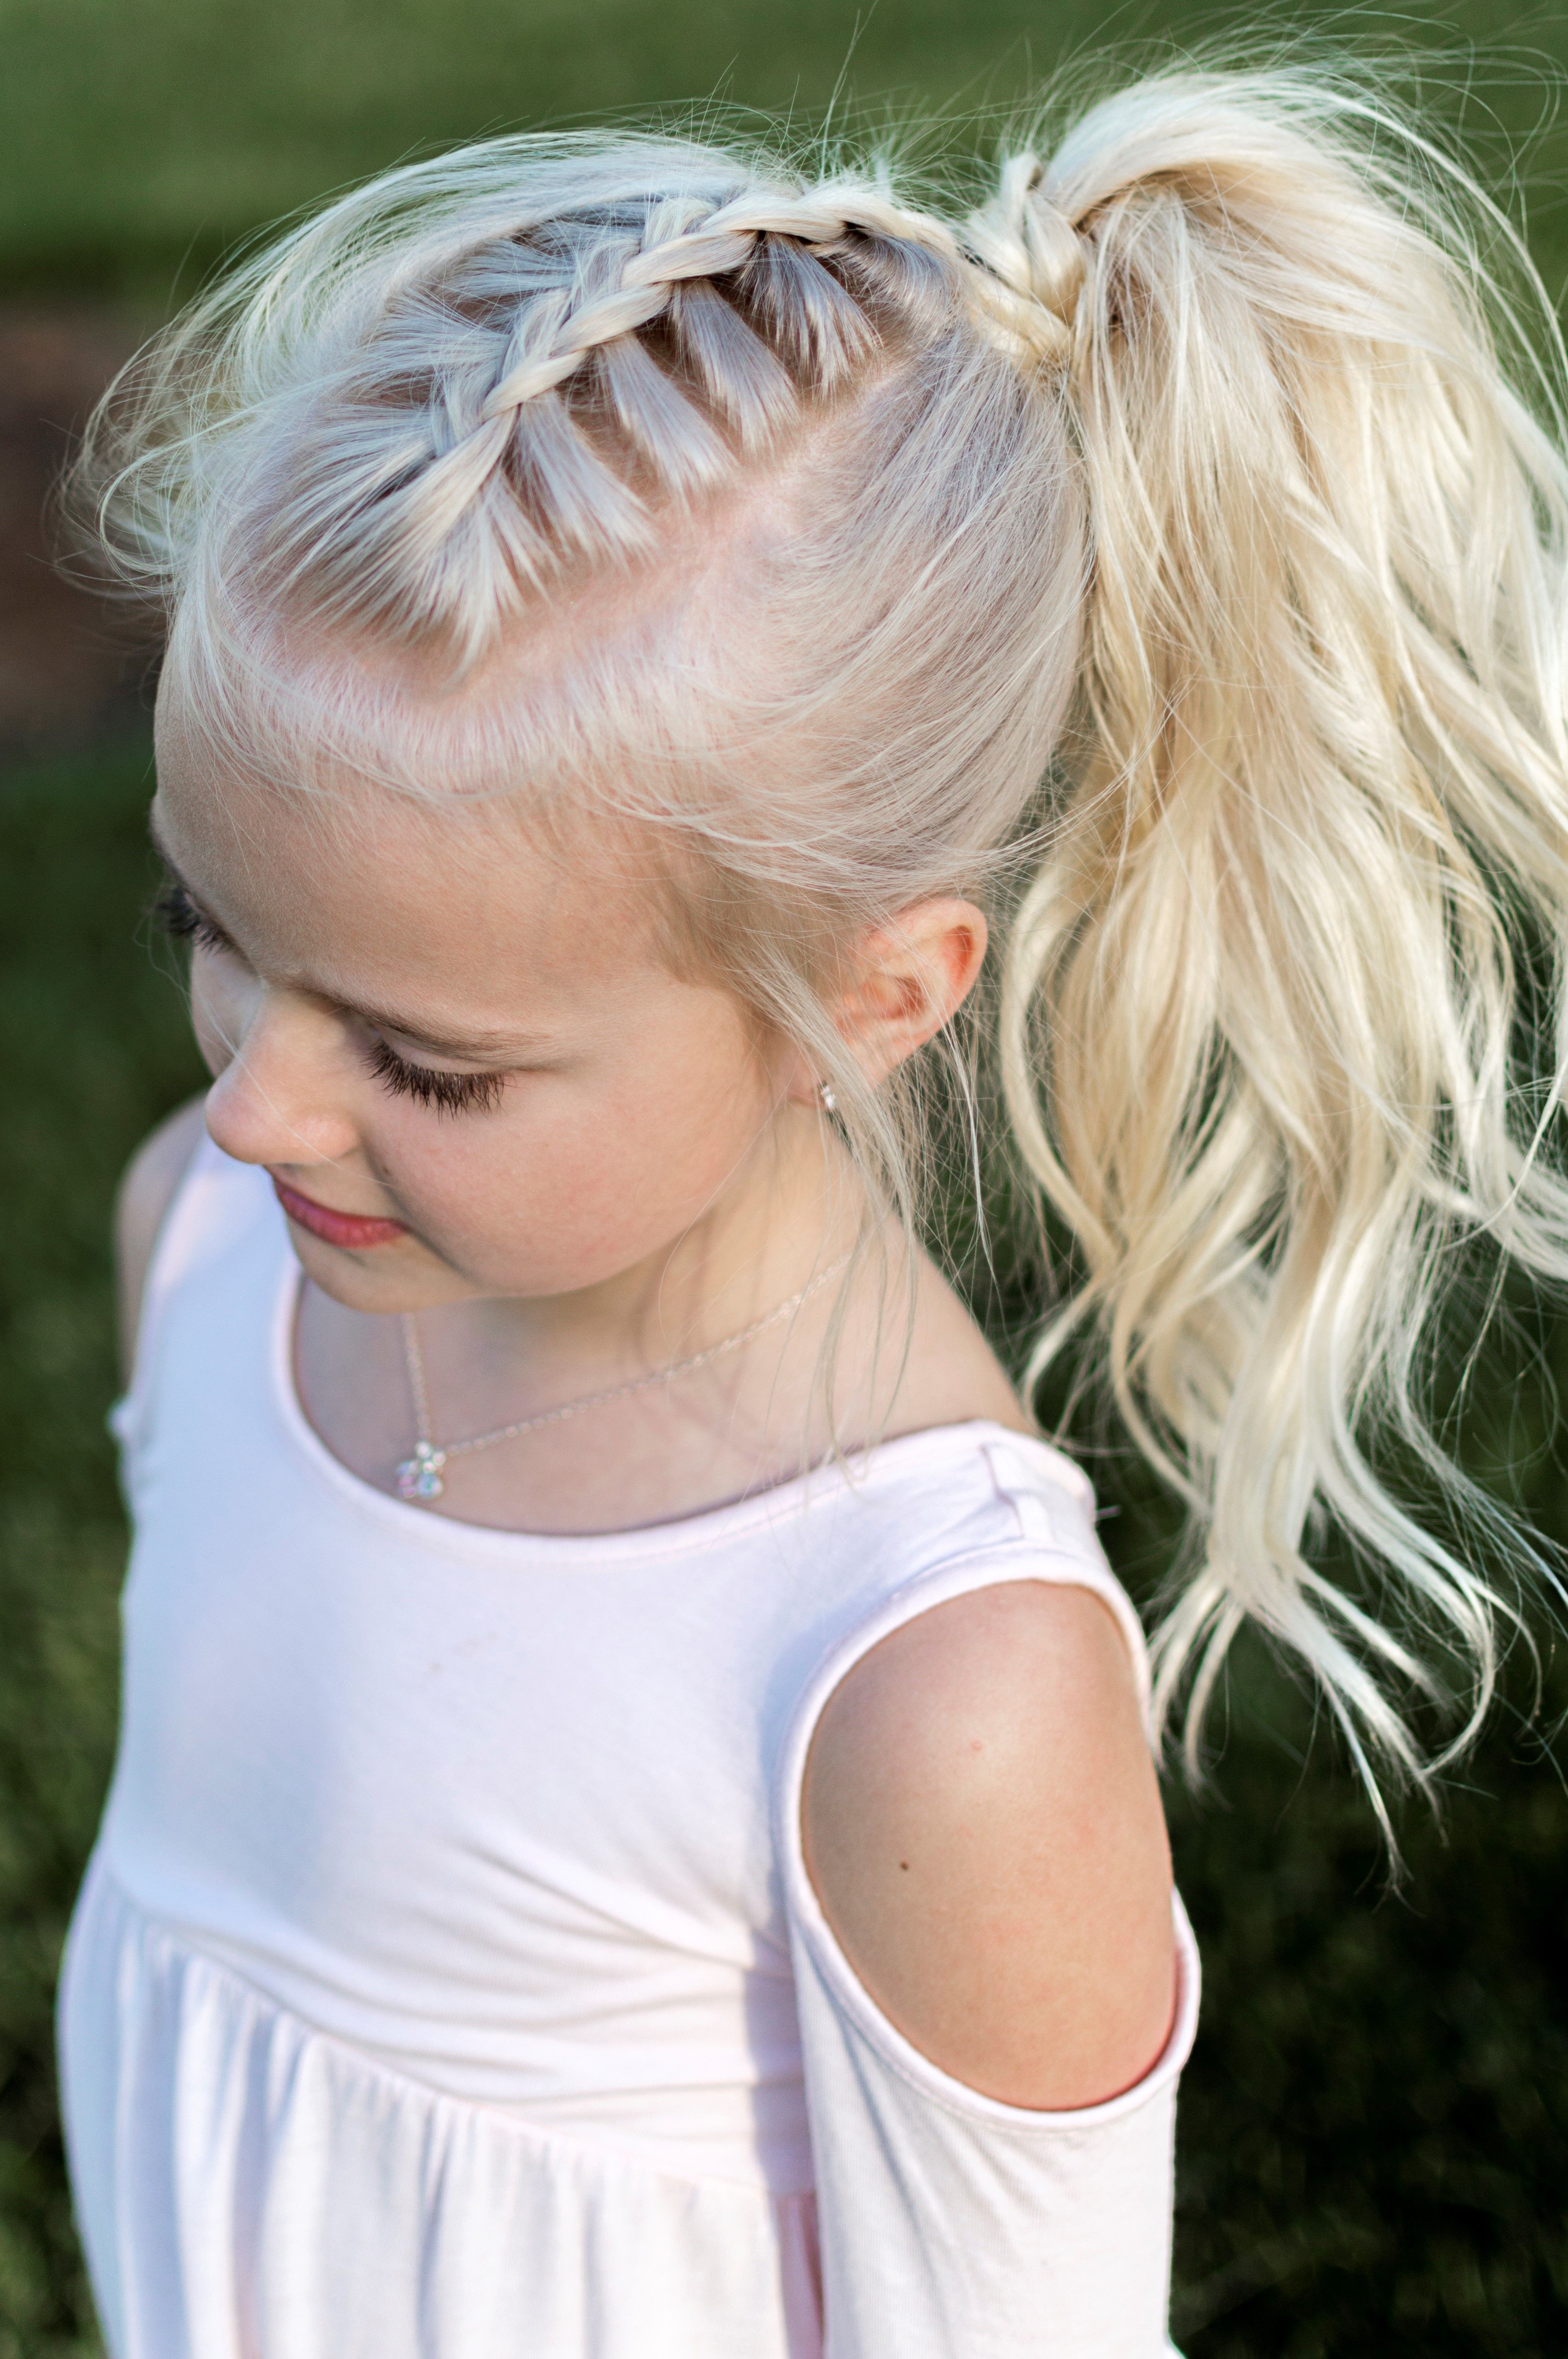 Little Girl Hairstyle French Braid Pony Tail Curls High Pony For Most Current Large And Loose Braid Hairstyles With A High Pony (Gallery 13 of 20)